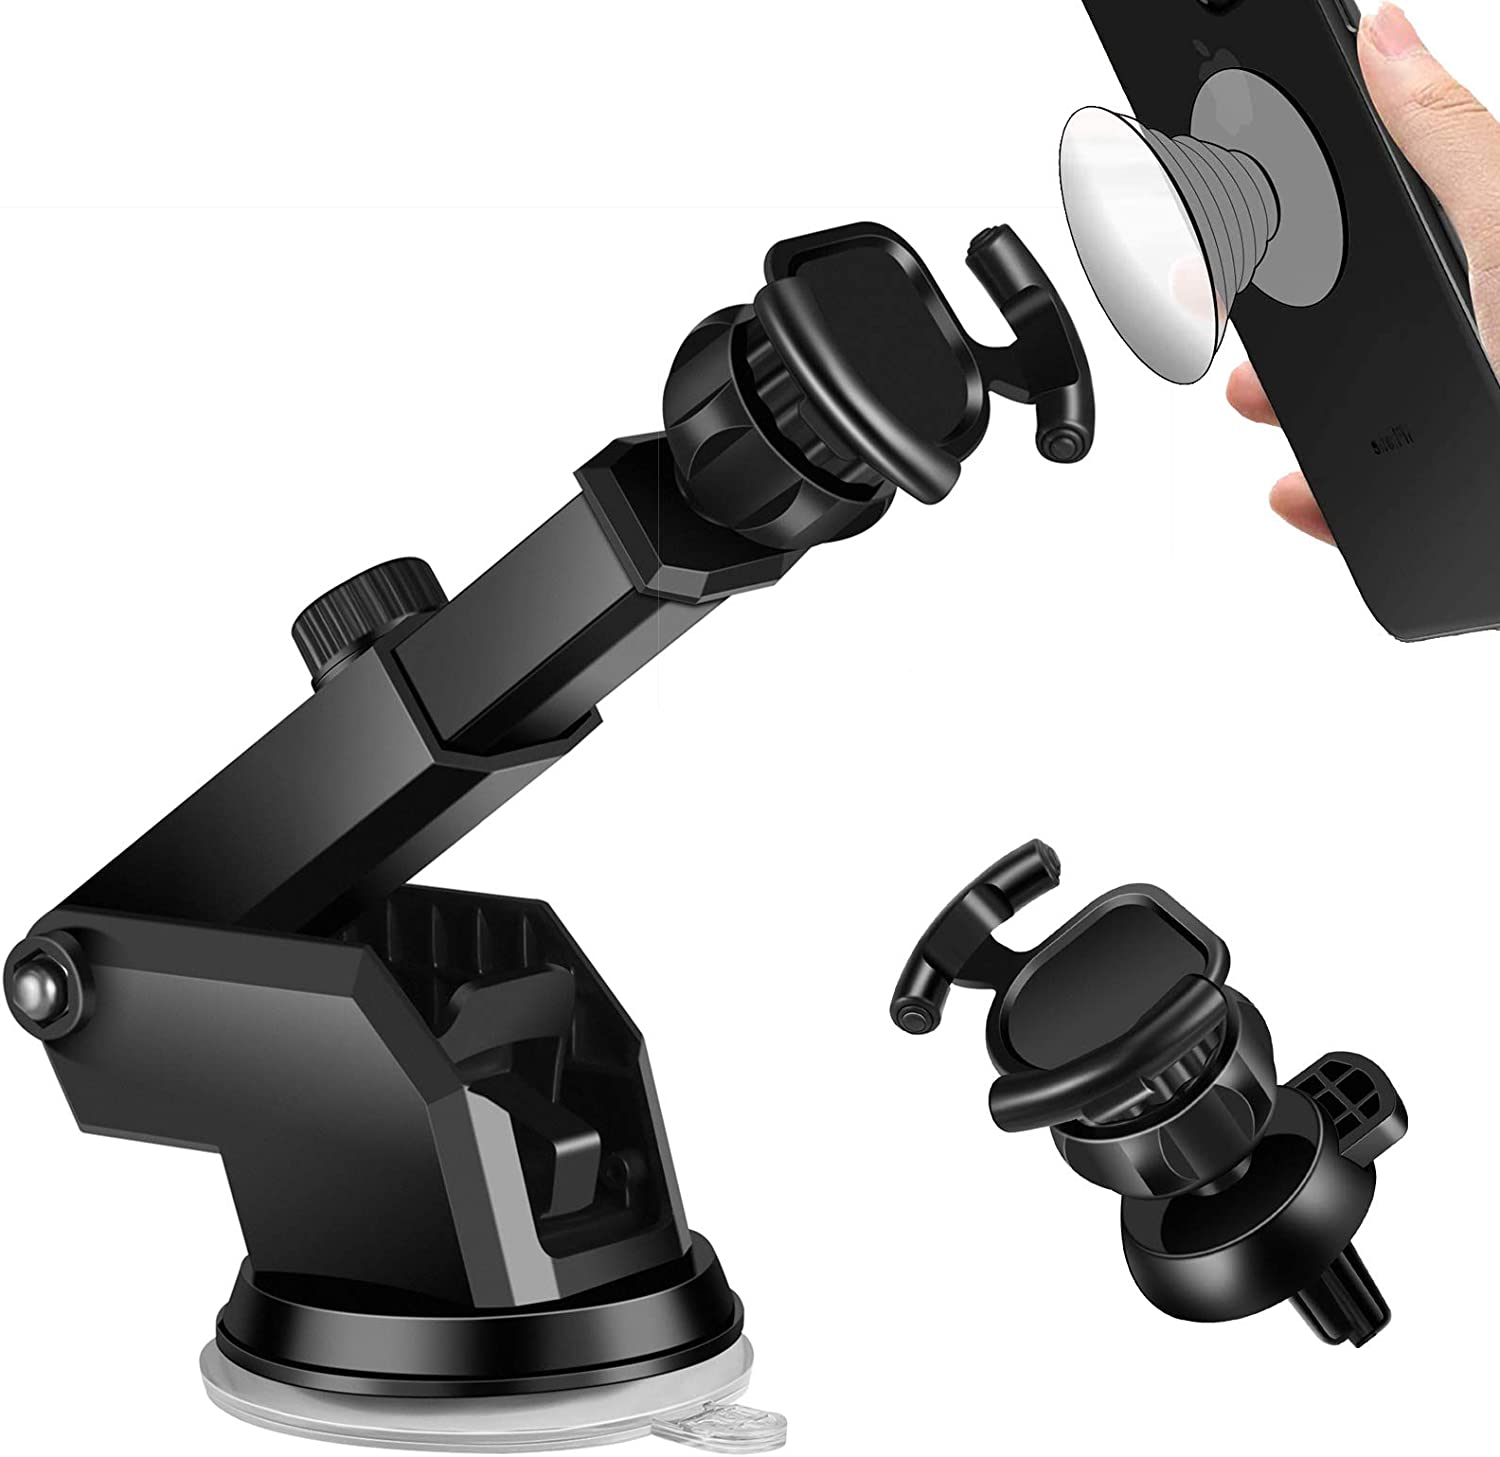 Car New product type Mount Air Vent Cell Max 45% OFF Phone Cup Suction Pop Holder f